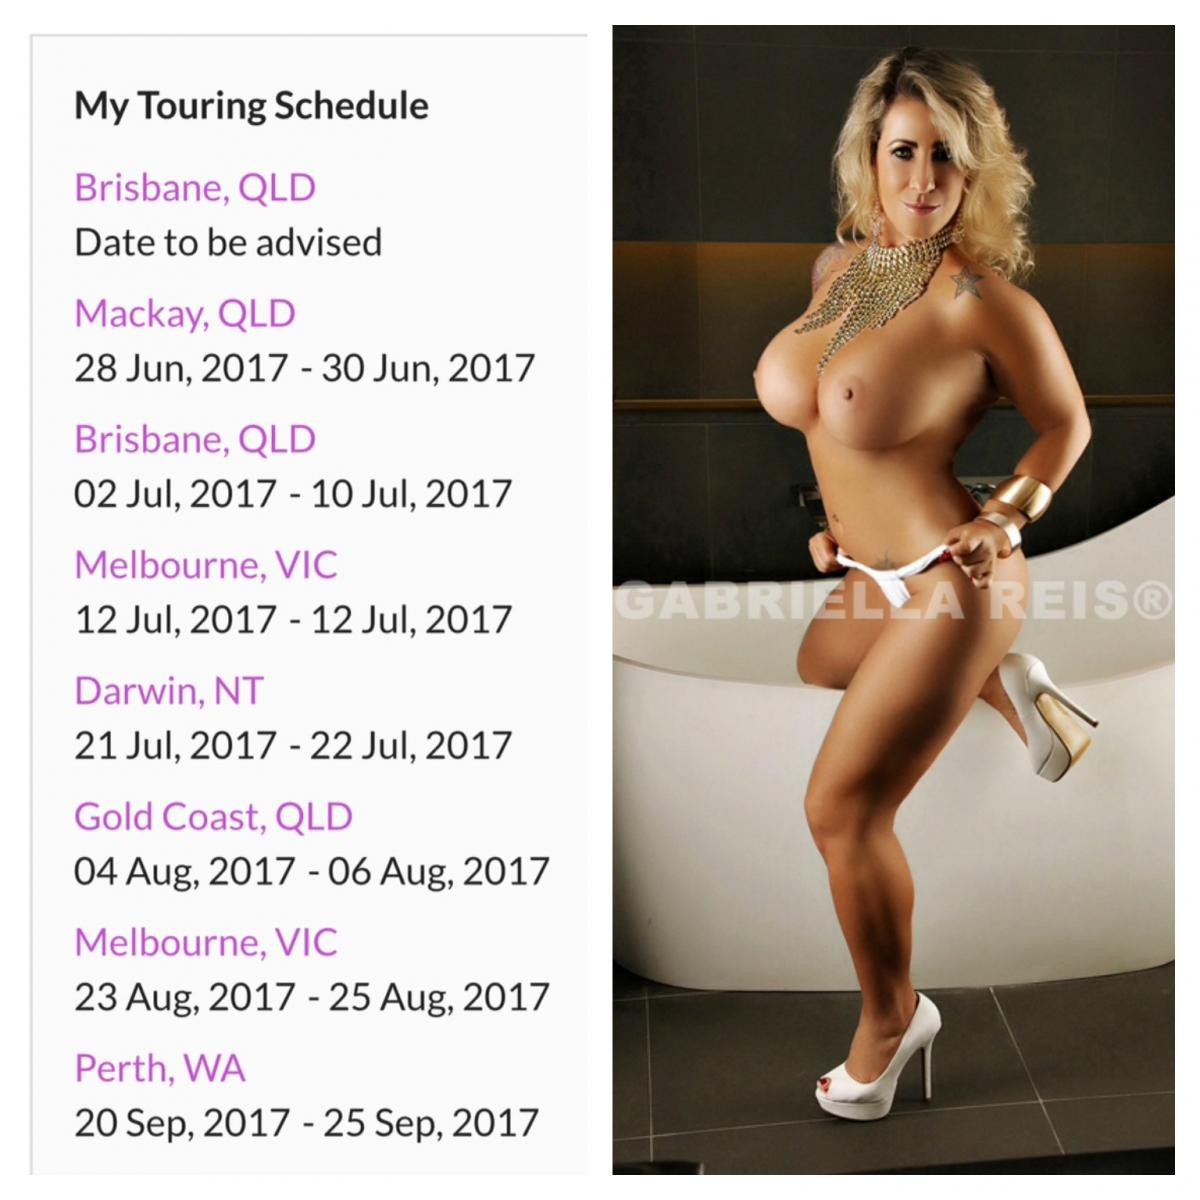 Gabriella Reis is coming back Darwin 21st & 22nd July